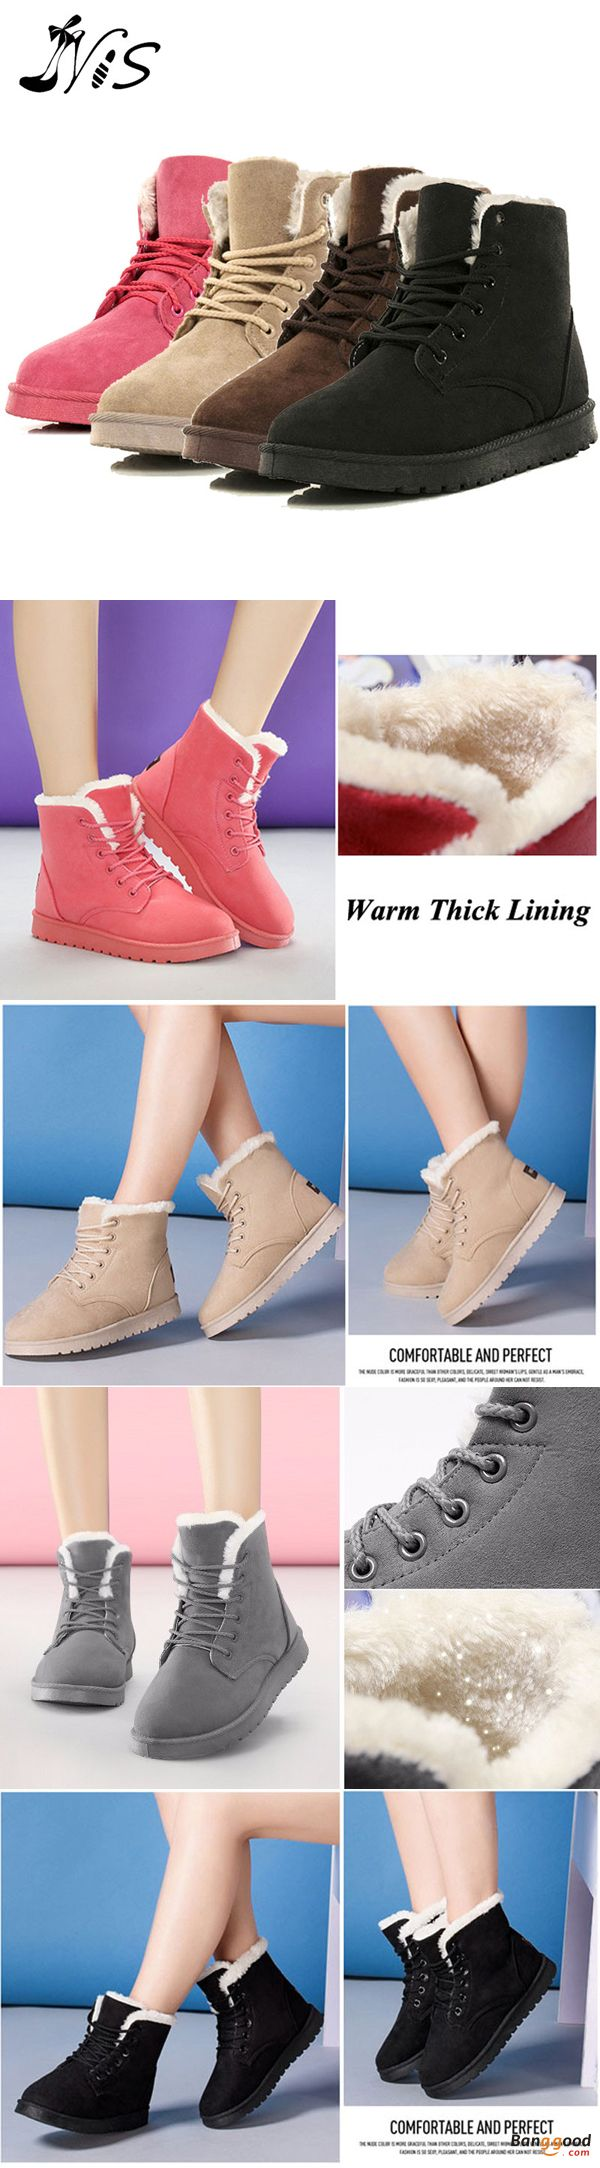 US$28.58 + Free shipping. Size: 5-9. Color: Black, Pink, Blue, Beige, Brown. Fall in love with casual and warm style! WADNASO New Women Winter Keep Warm Suede Cotton Comfortable Ankle & Short Snow Boots.